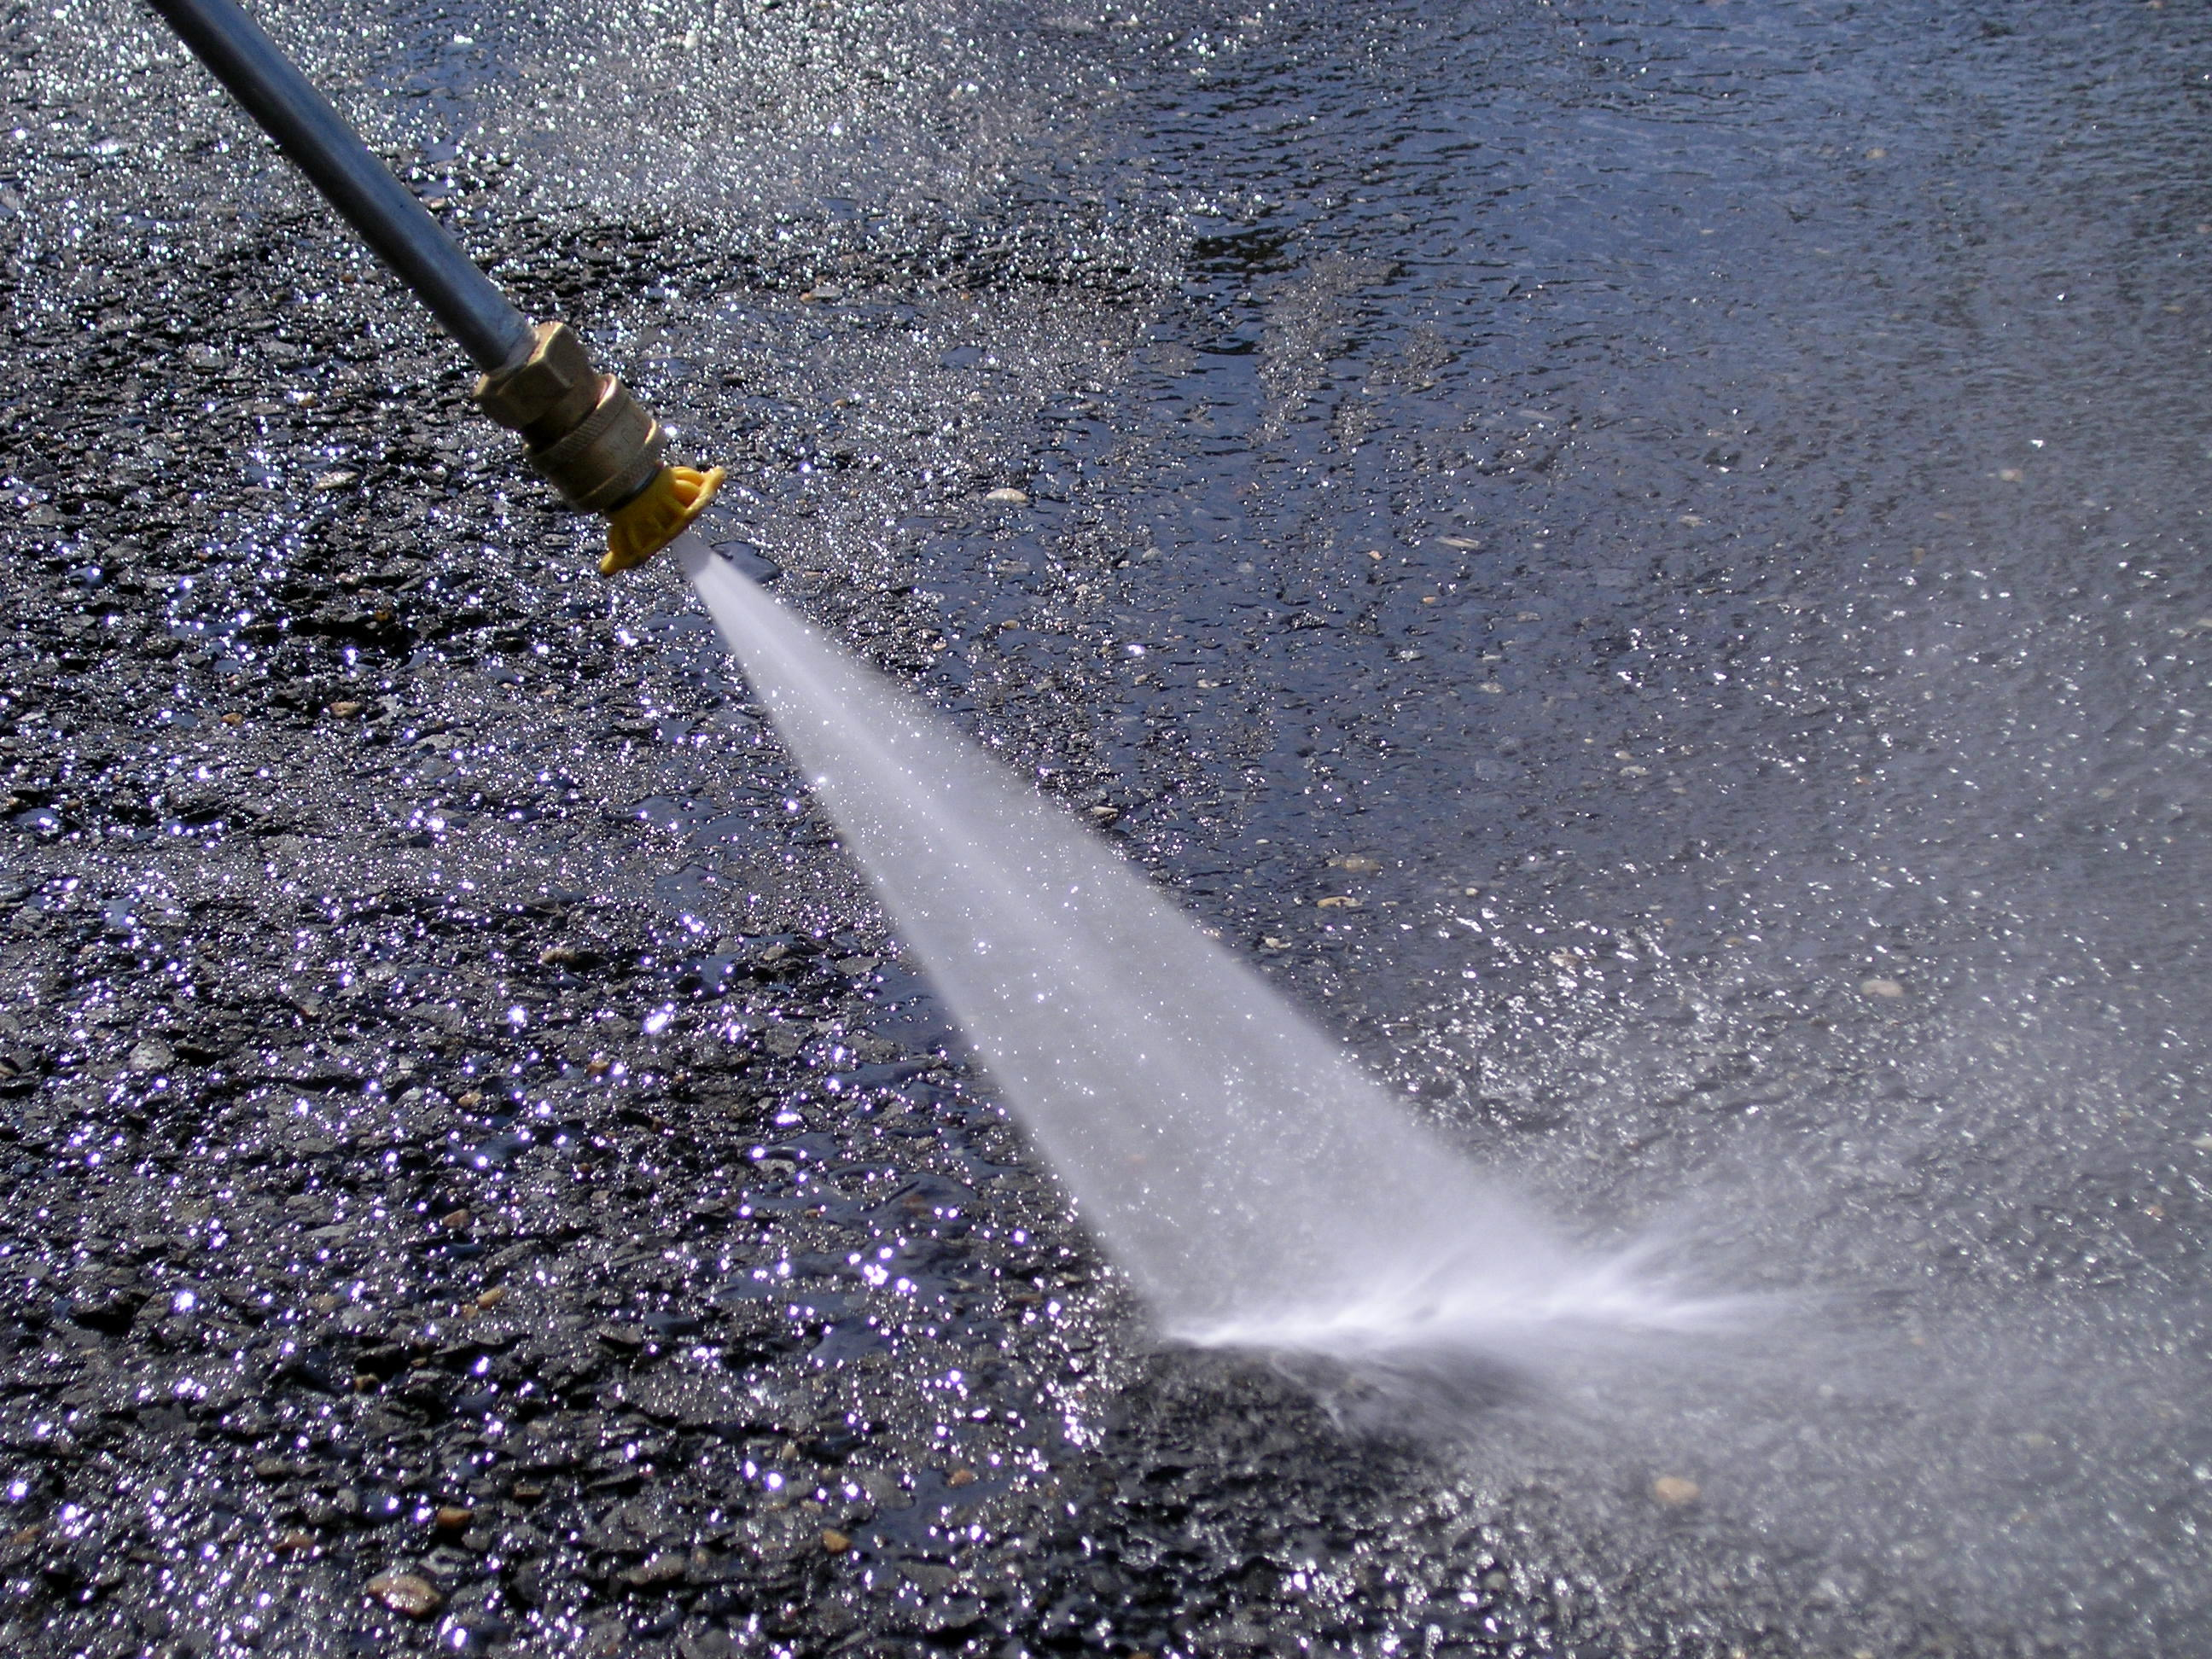 File pressure wash jpg wikipedia - Using water pressure roof cleaning ...